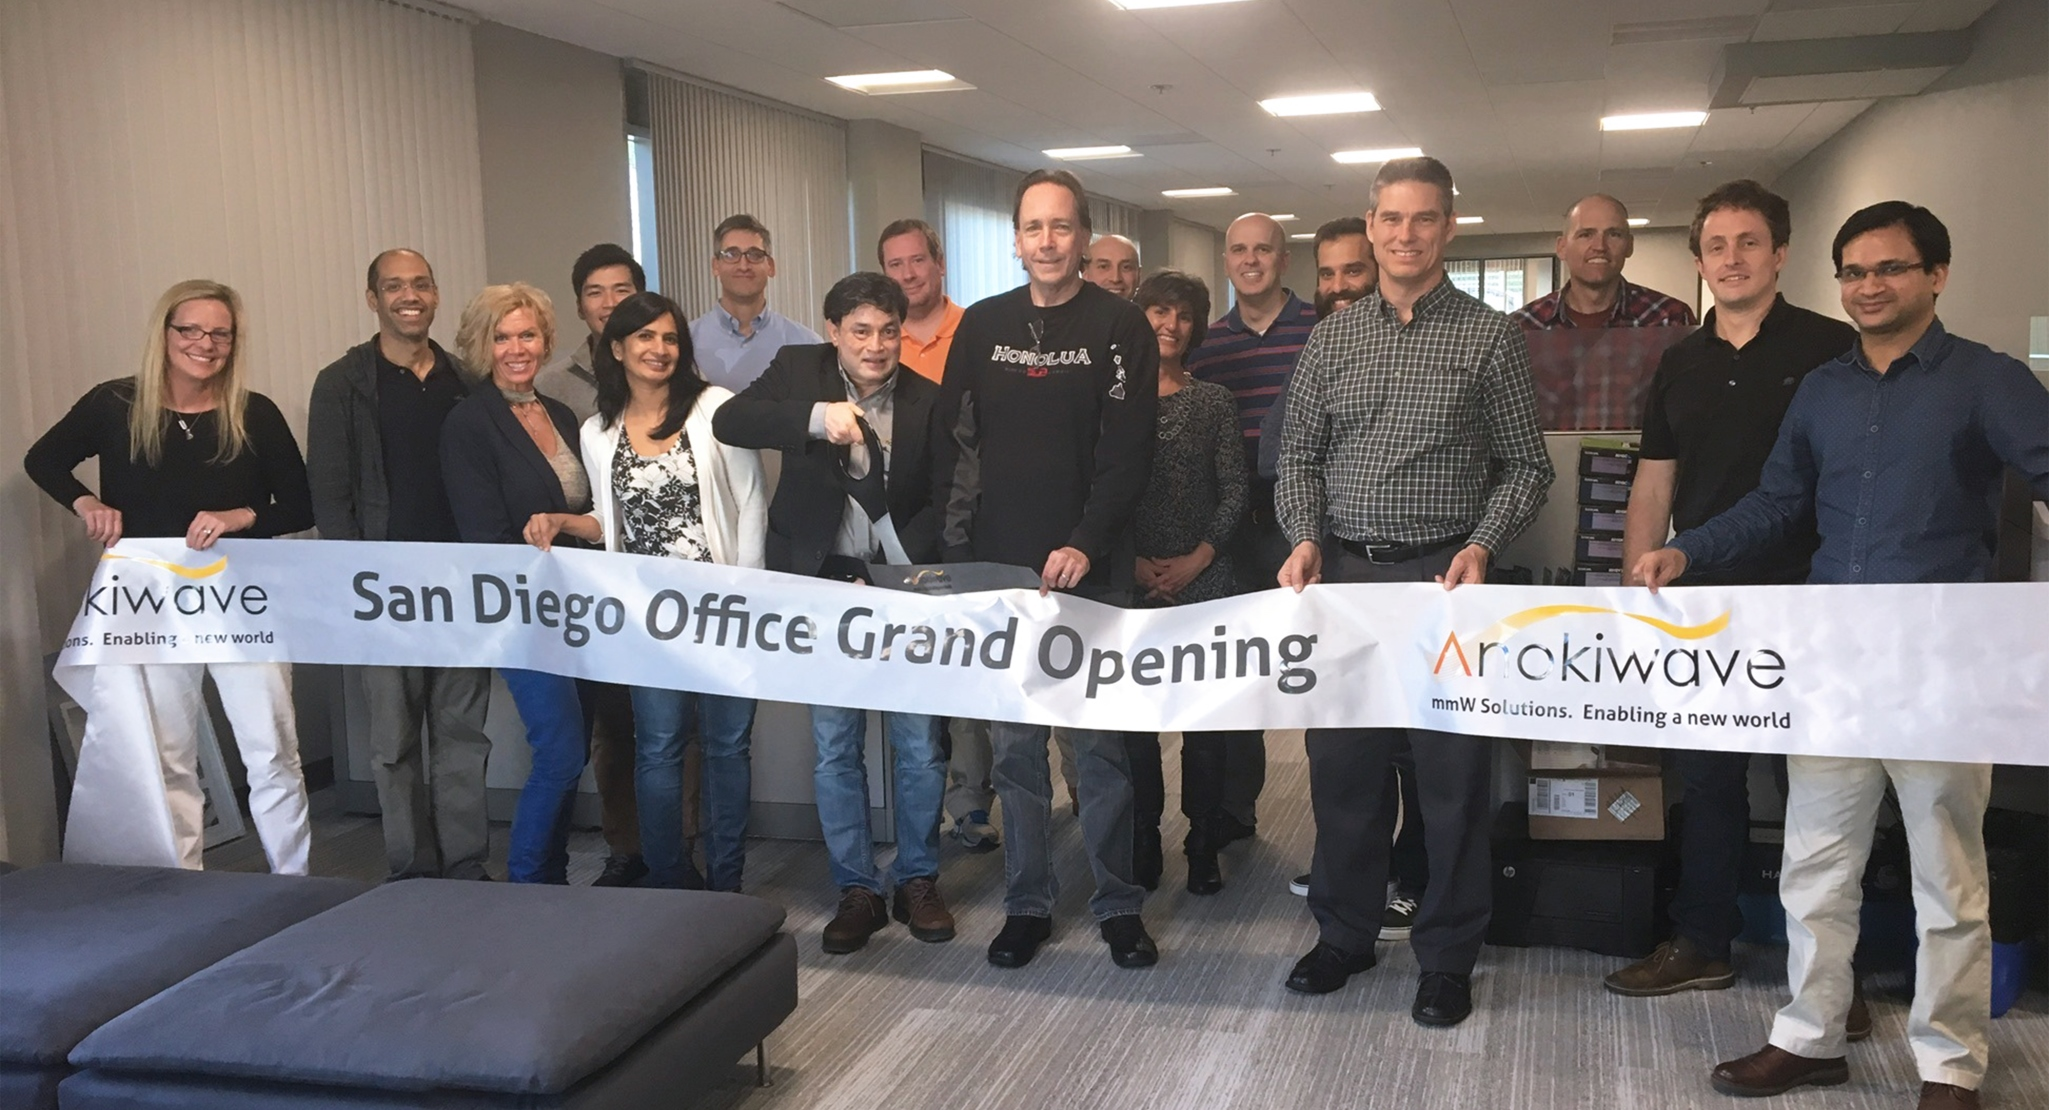 Grand Opening of San Diego Office